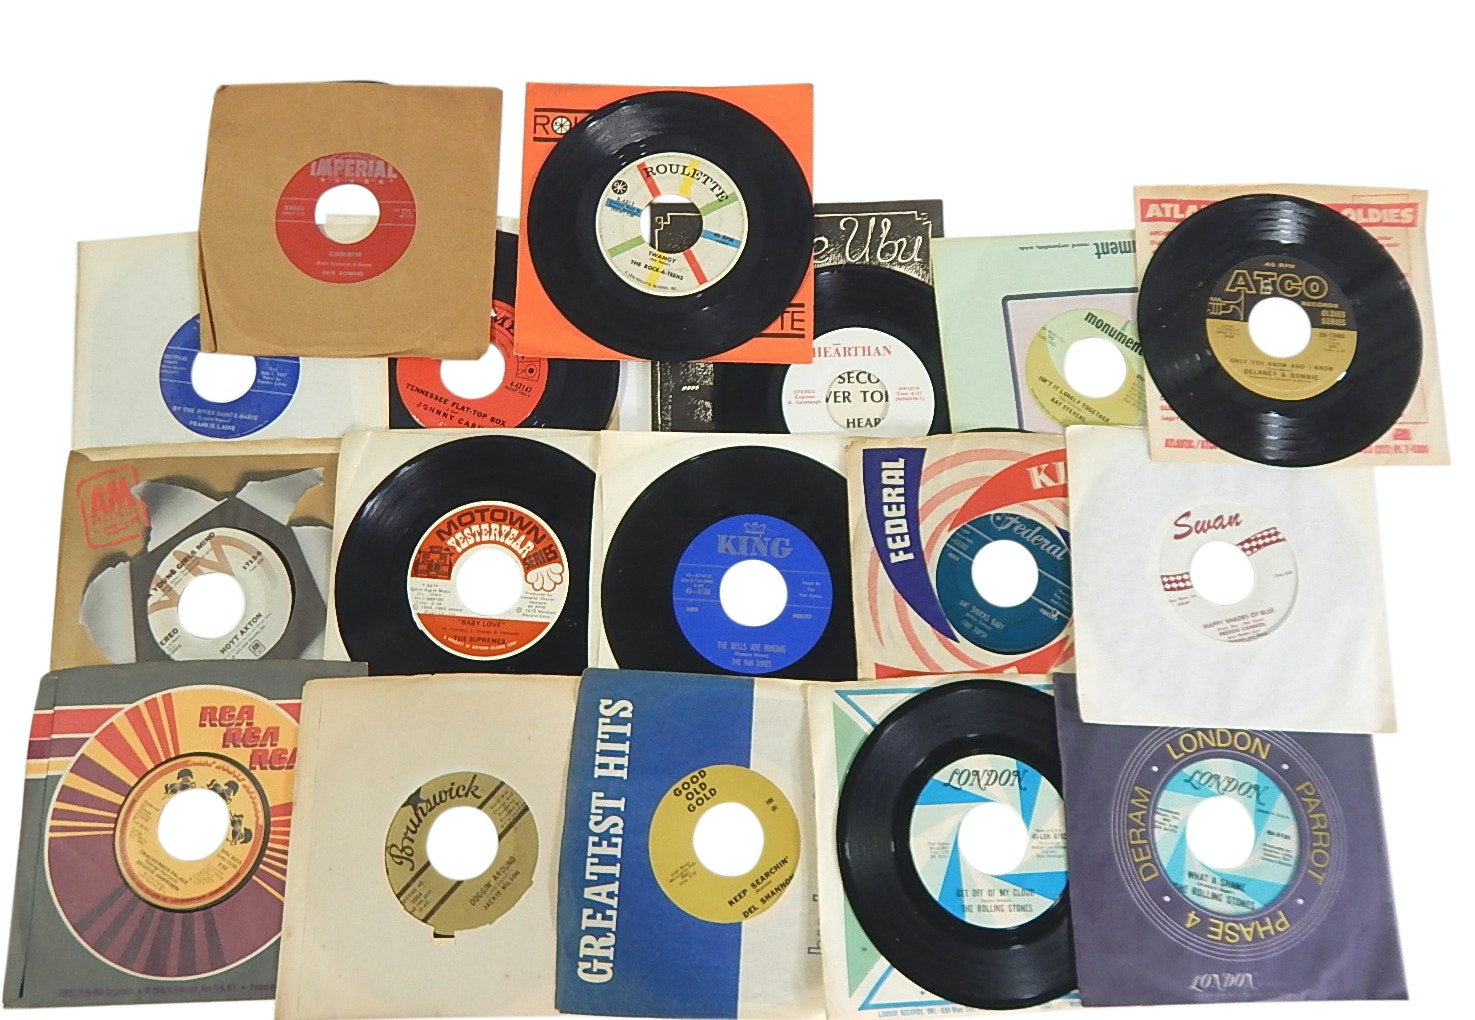 45 RPM Record Albums with Country, Rock, R&B - J.Cash, King Records, More